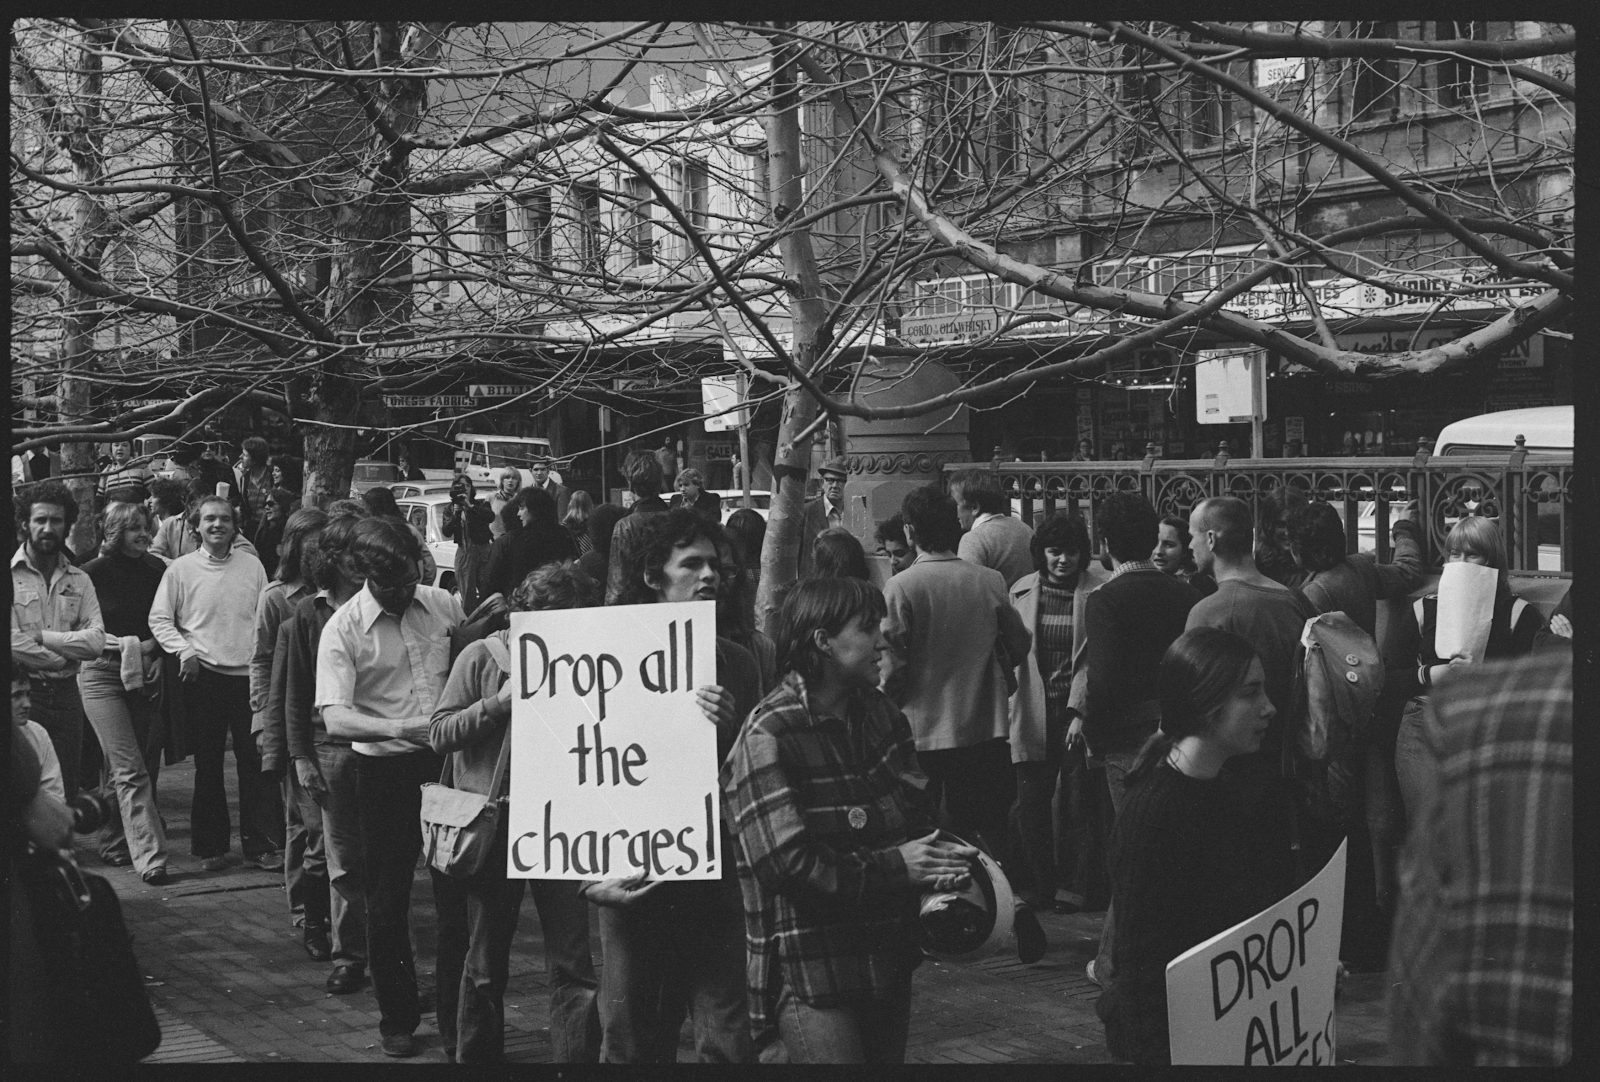 """A Gay Liberation protest in New South Wales circa 1967. A man in the foreground is holding a white sign with black text that reads """"Drop all the charges!"""